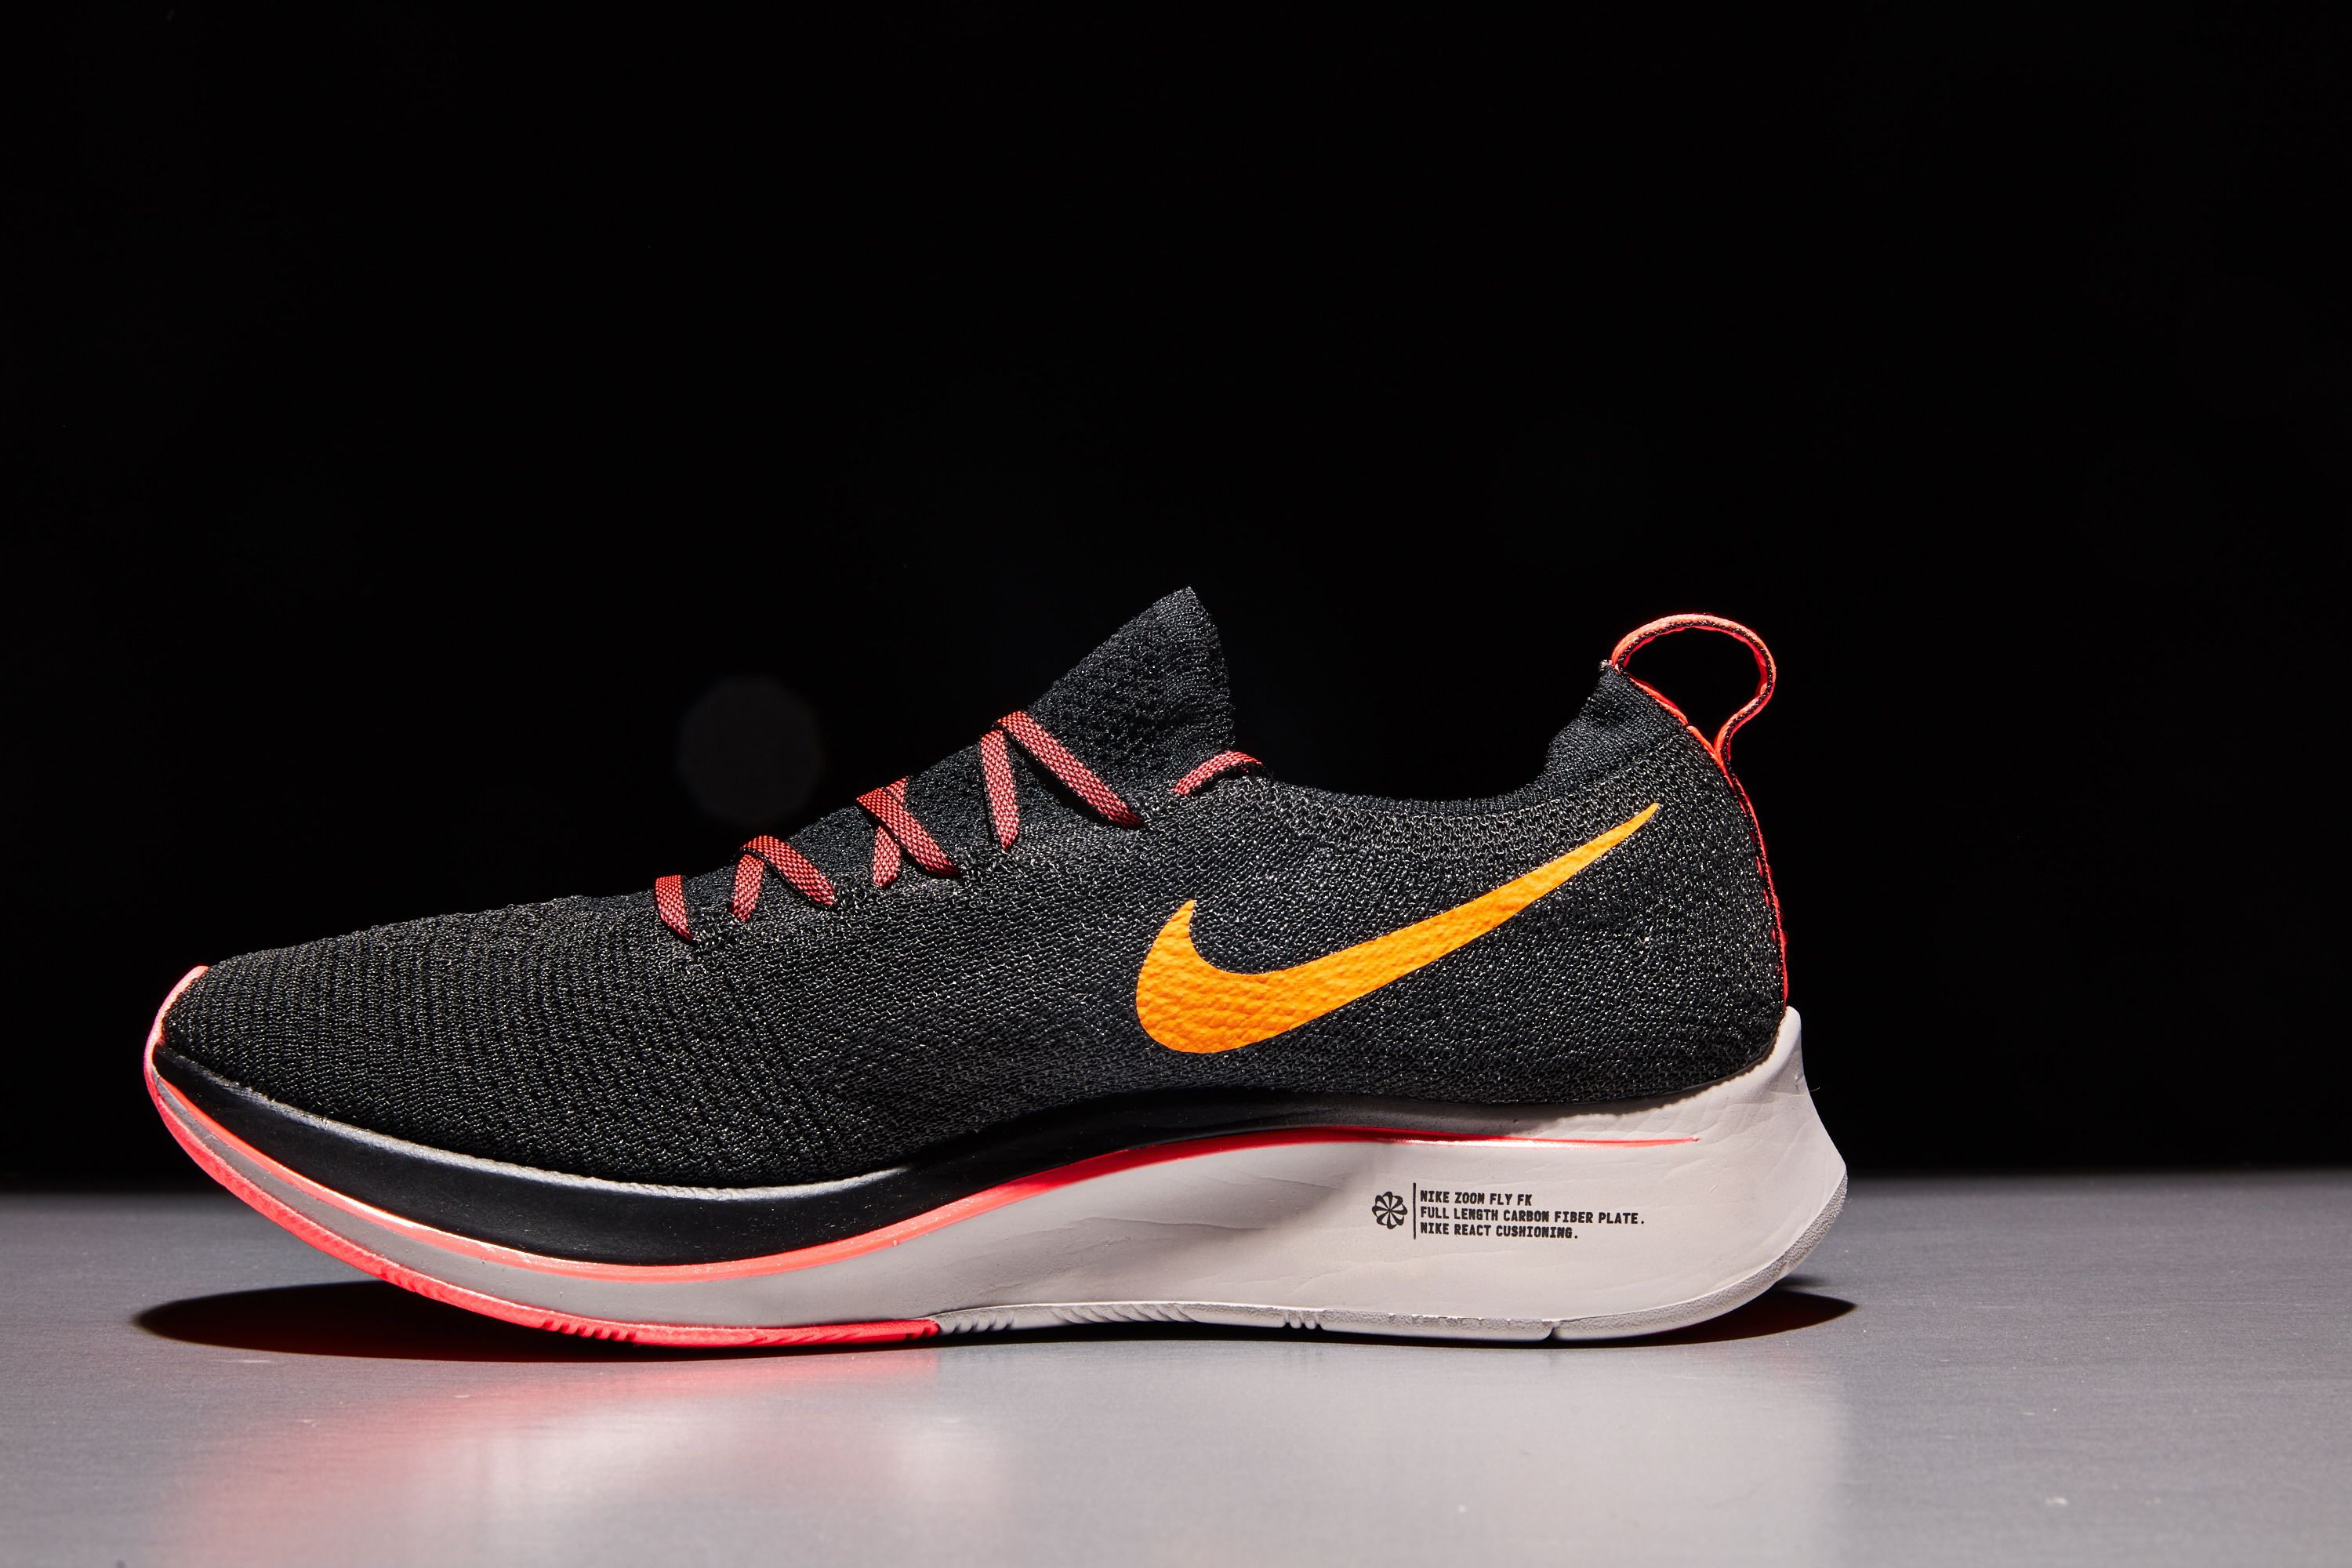 ba457611bcc7 Nike Zoom Fly Flyknit Review - Nike Running Shoes